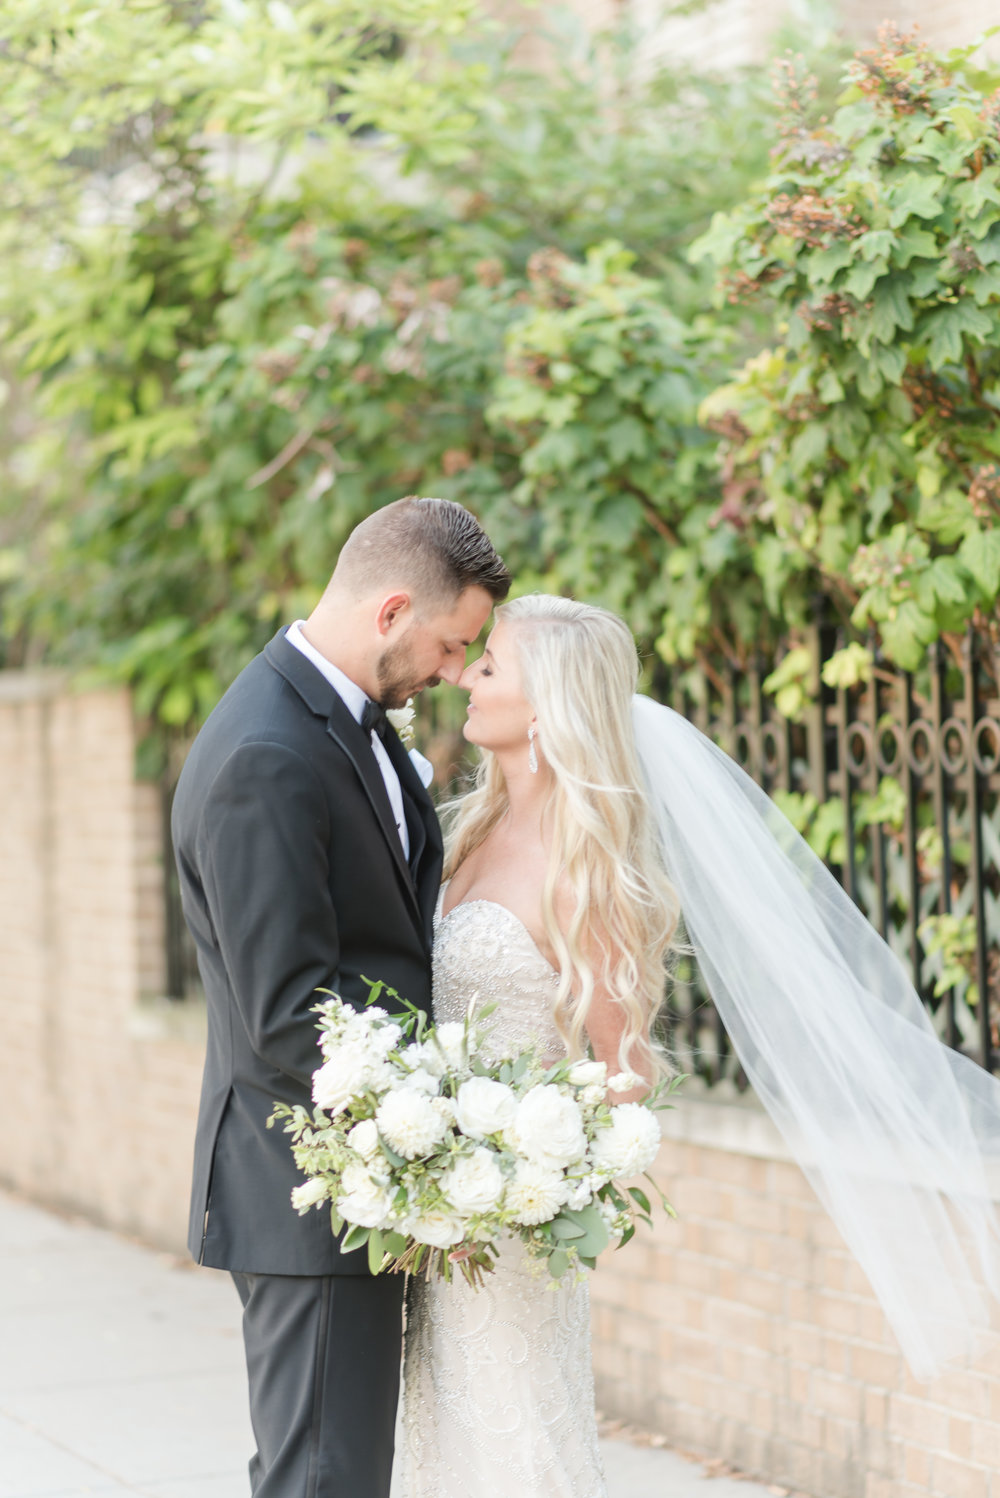 Indianapolis Wedding Photographers Wedding Day Timeline Bride and Groom Photos